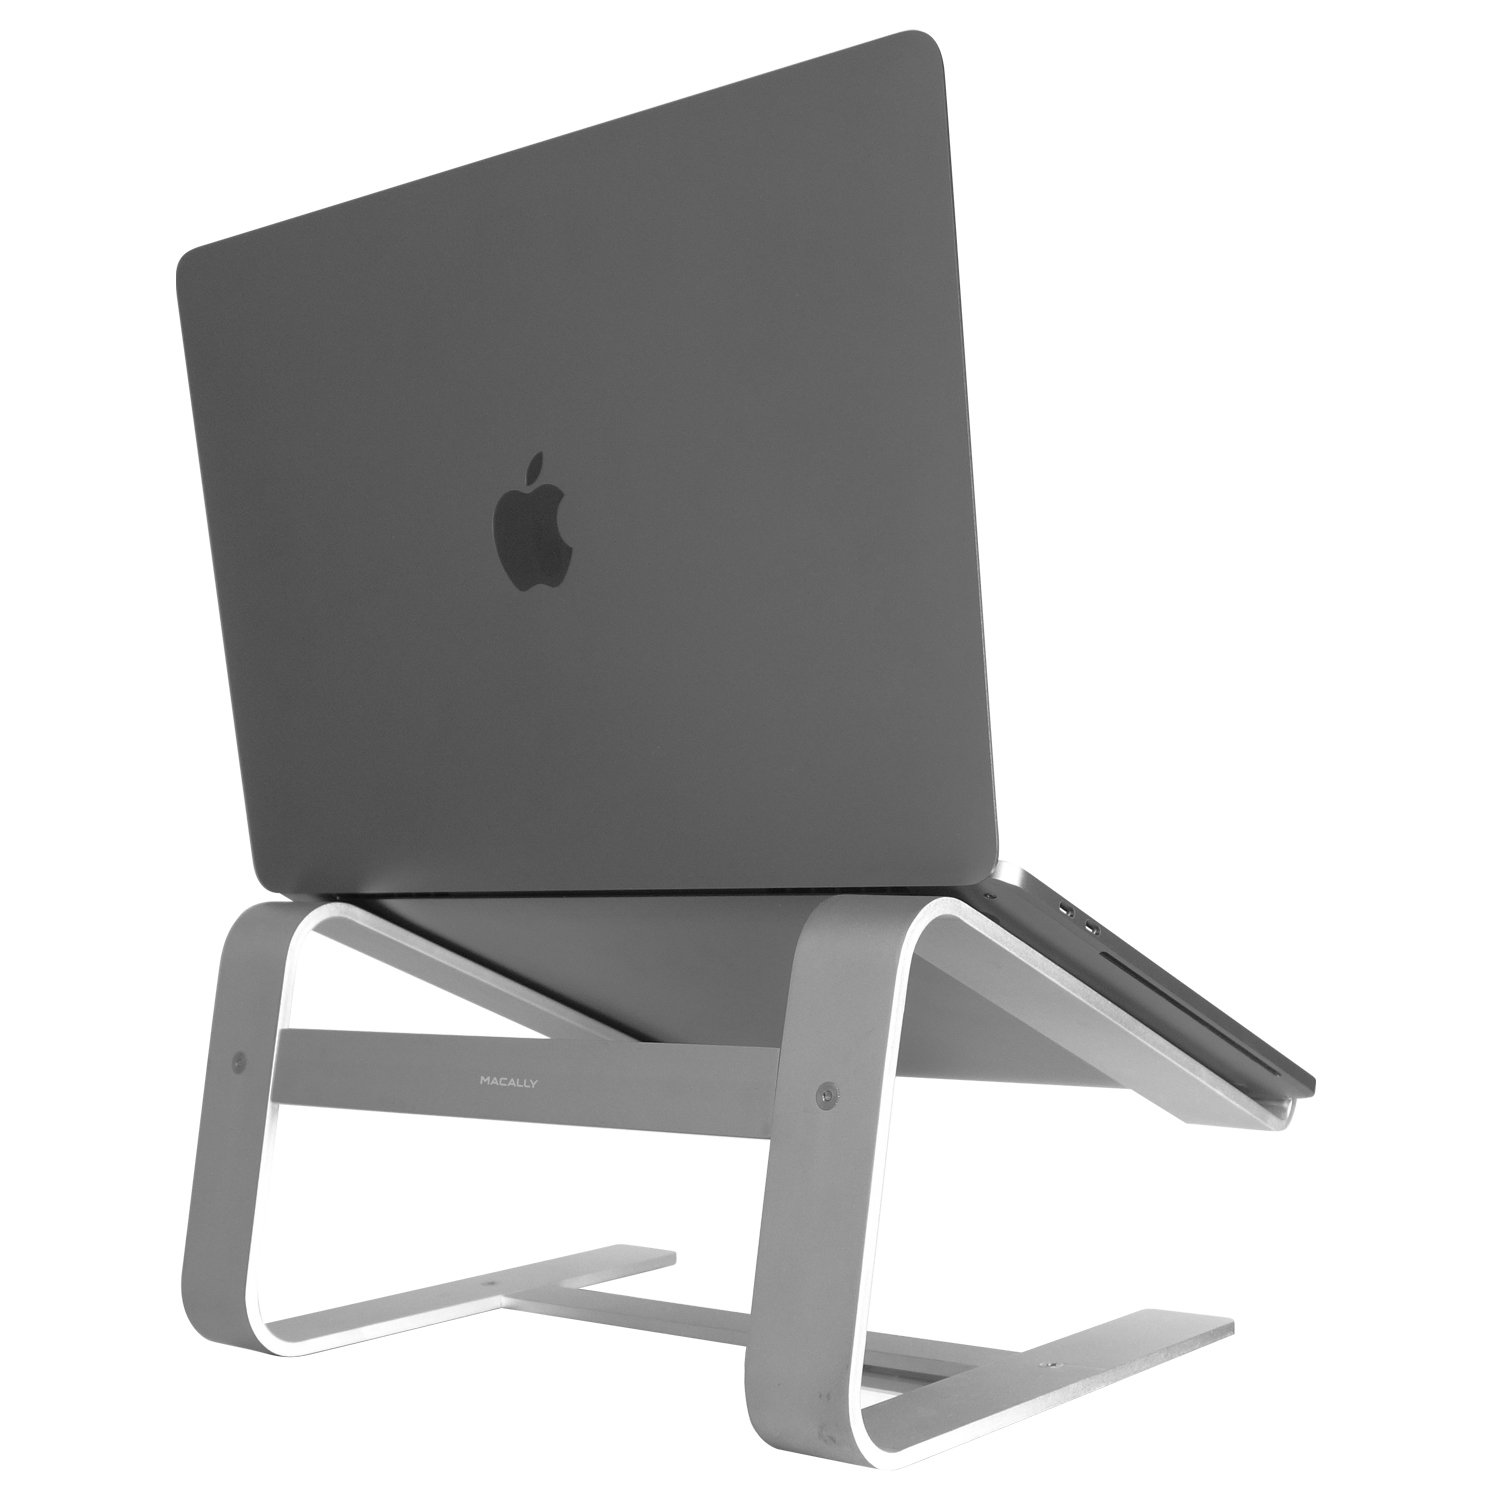 "Macally ASTAND aluminum laptop stand for Apple Macbook, Macbook Air, Macbook Pro and any laptop between 10"" to 17"